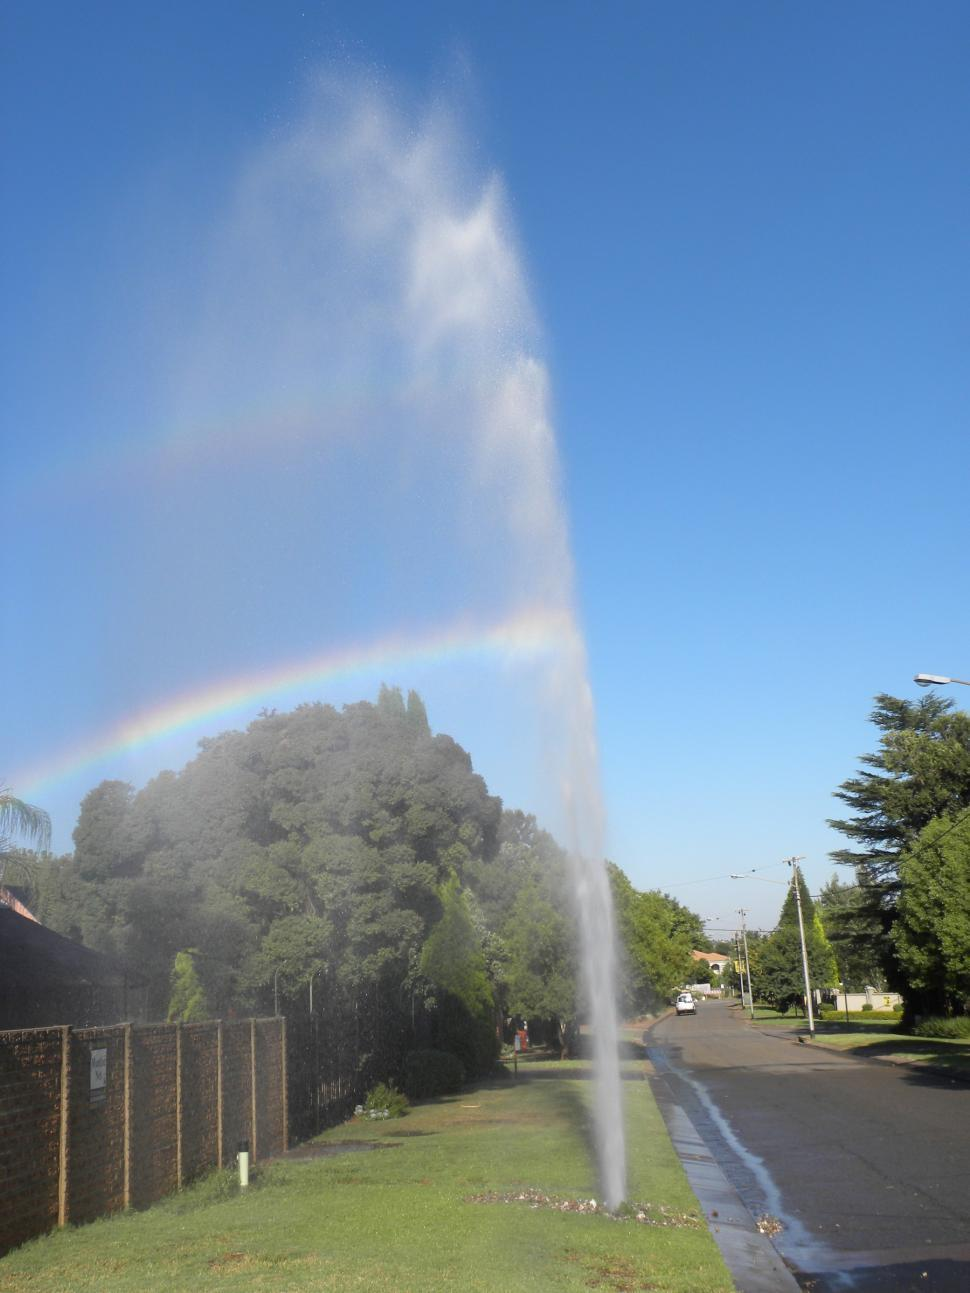 Download Free Stock HD Photo of Geyser from Burst Water Pipe Online